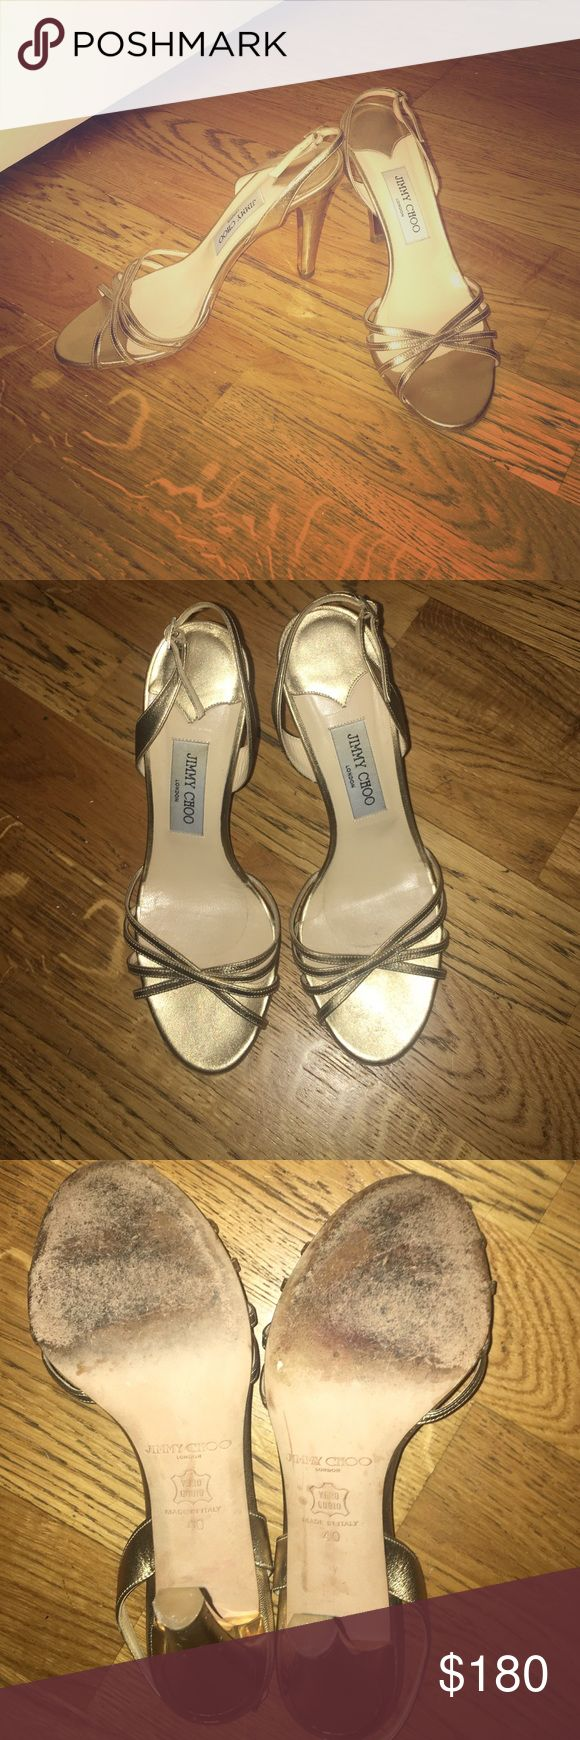 Jimmy Choo size 40 gold evening heels Worn only 3 times, these gold Jimmy Choo evening shoes are a match for any evening outfit! 4 inch heels, light wear. No box but dust bag included with purchase. Jimmy Choo Shoes Heels